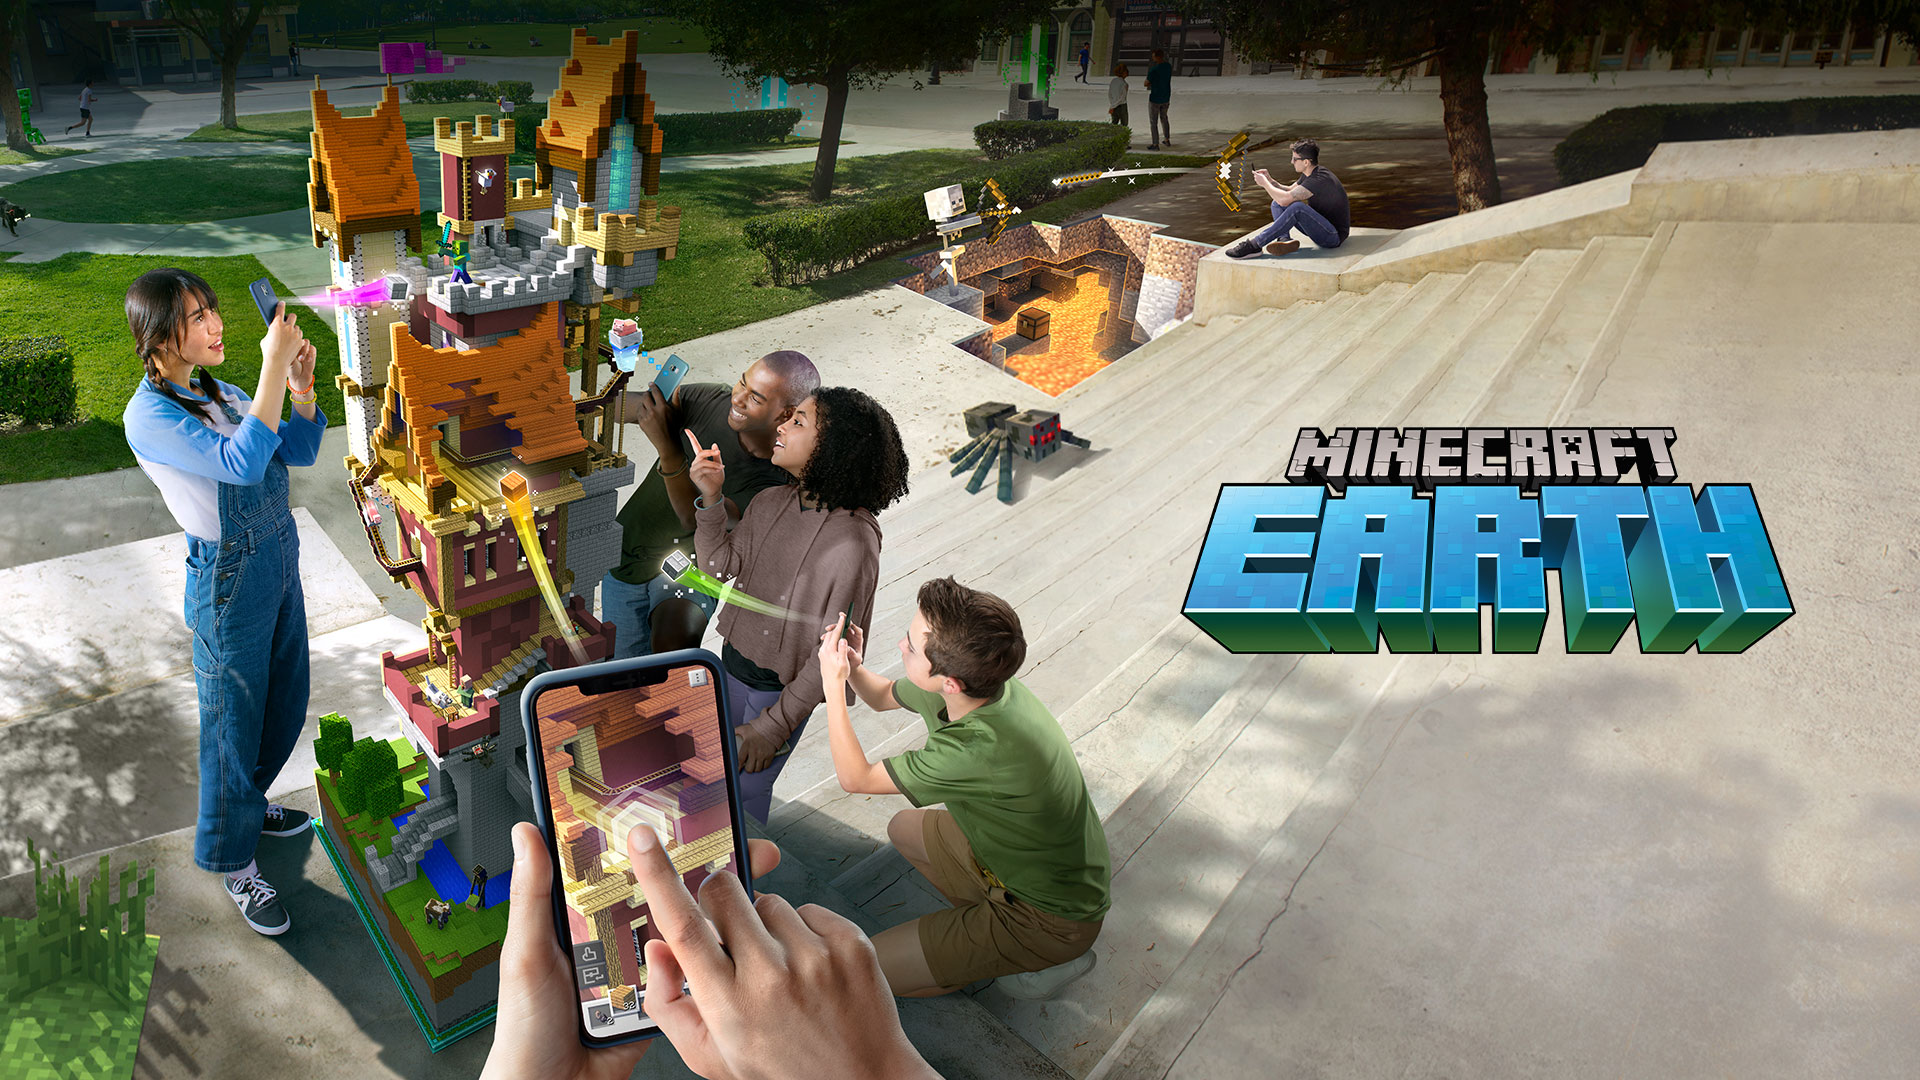 """Minecraft Earth Is Hosting A """"Mobs At The Park"""" Event In New York, London, And Sydney"""